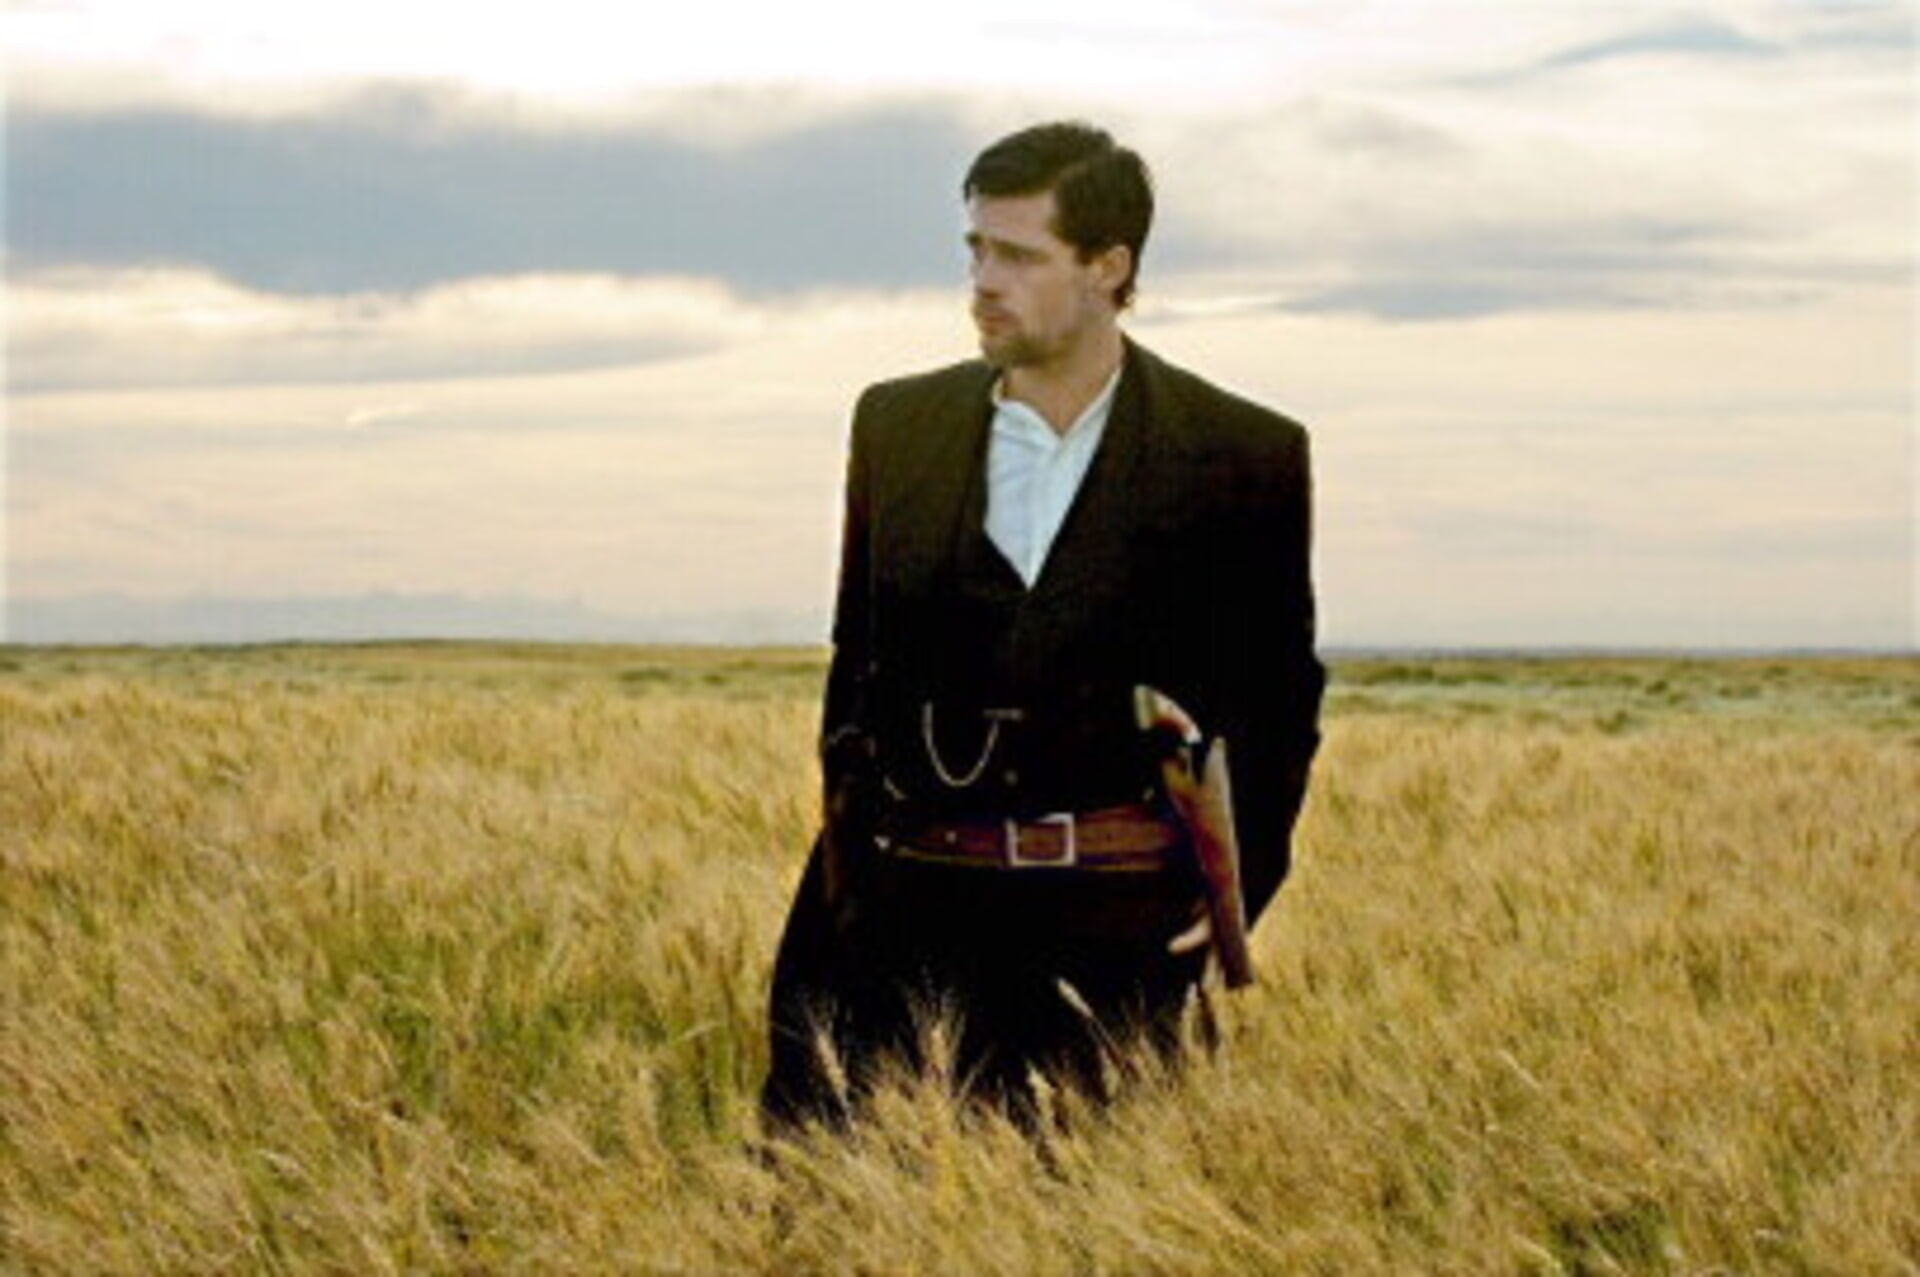 The Assassination of Jesse James by the Coward Robert Ford - Image 12